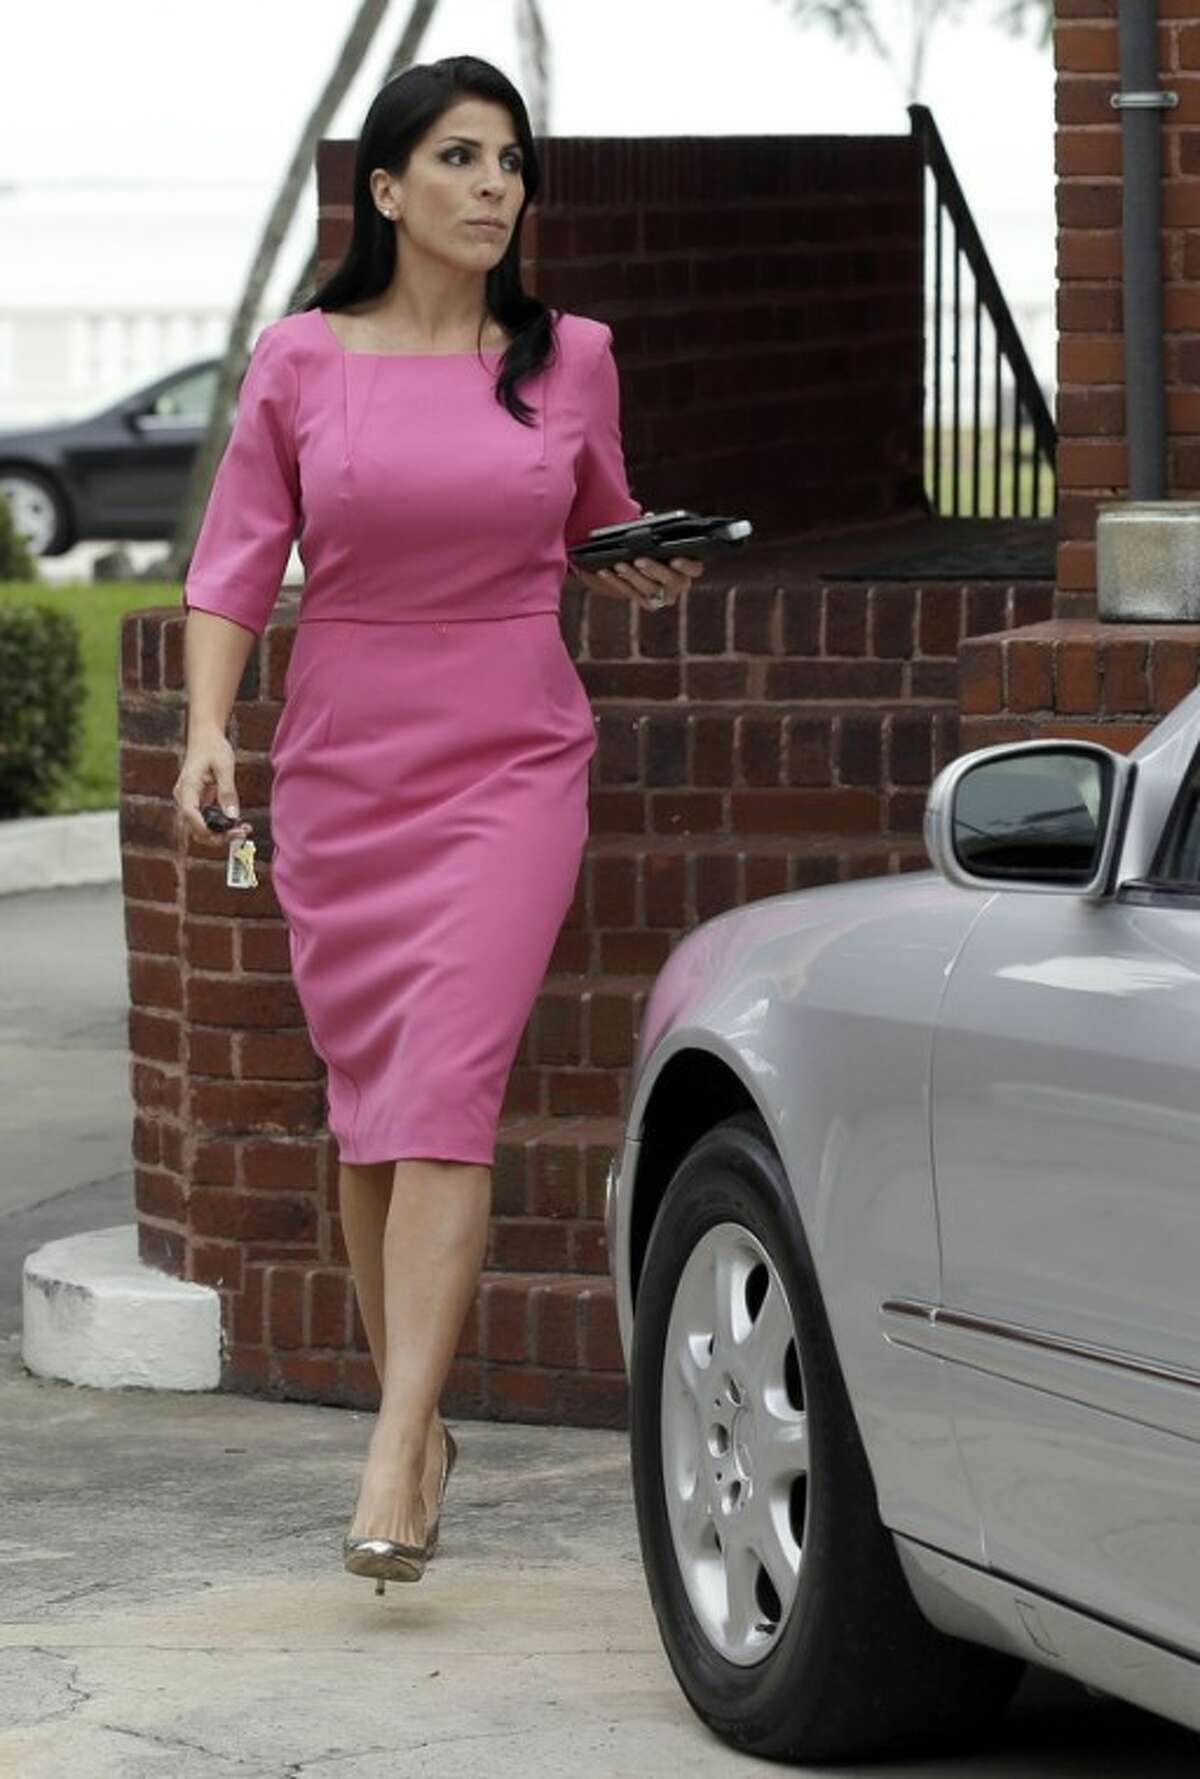 CORRECTS DATE TO 13 - Jill Kelley leaves her home Tuesday, Nov. 13, 2012 in Tampa, Fla. Kelley is identified as the woman who allegedly received harassing emails from Gen. David Petraeus' paramour, Paula Broadwell. She serves as an unpaid social liaison to MacDill Air Force Base in Tampa, where the military's Central Command and Special Operations Command are located. (AP Photo/Chris O'Meara)